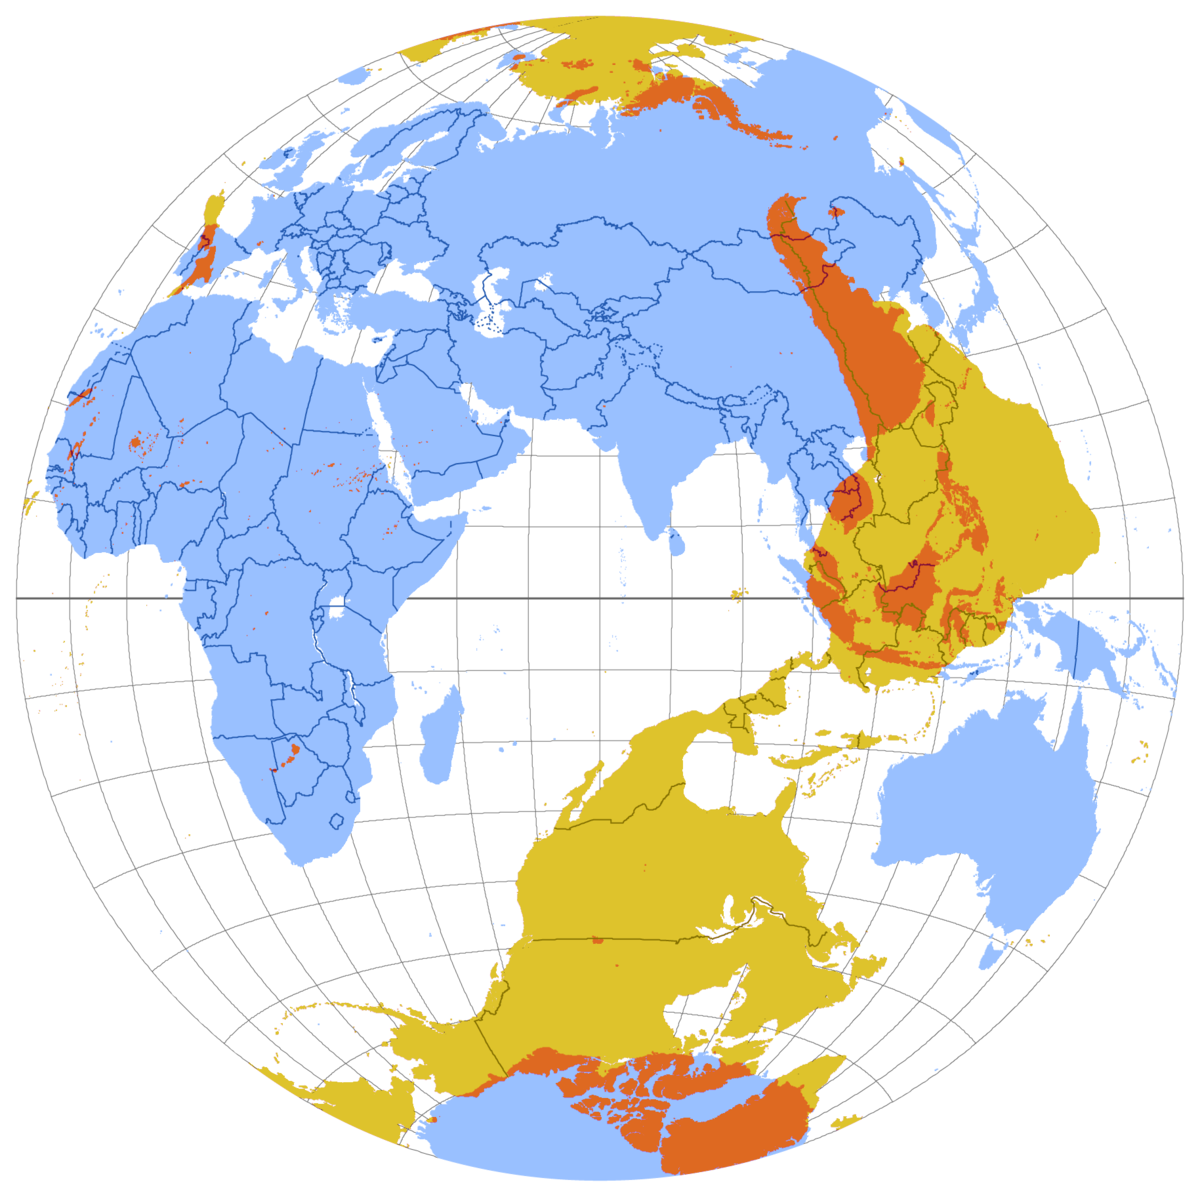 Antipodes Wikipedia - Earth map show airplane travell from us to austrialia